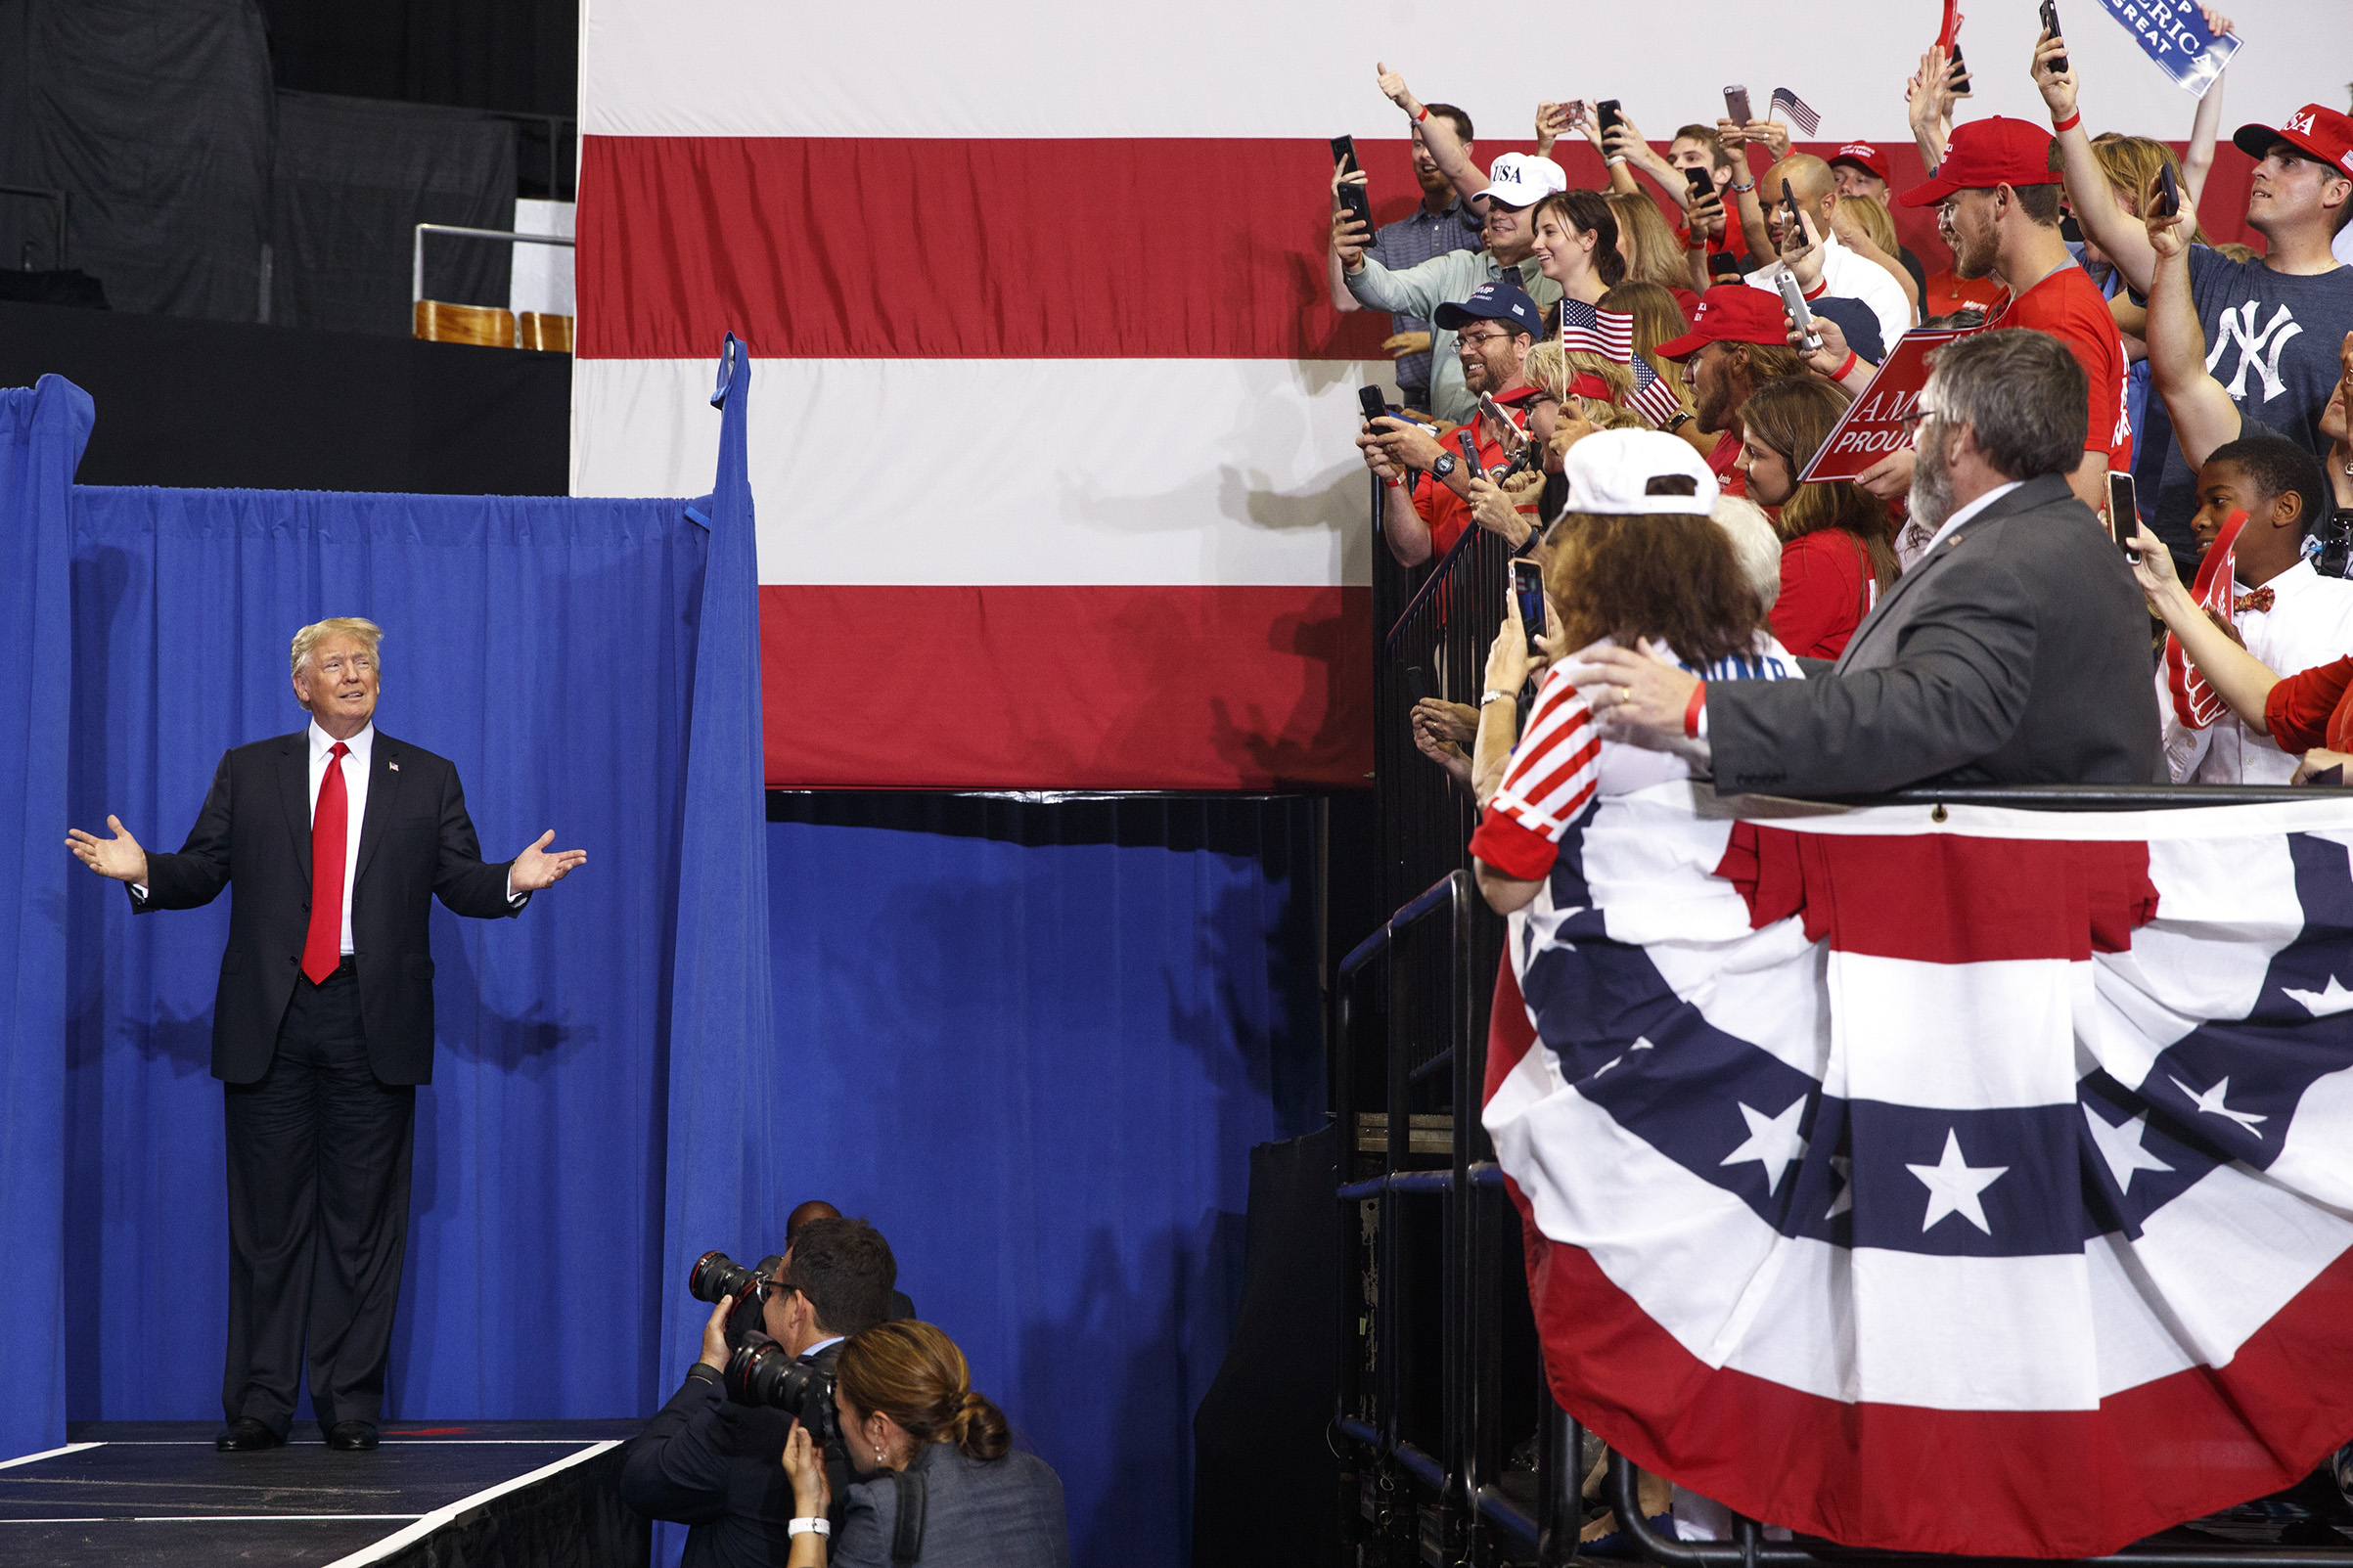 President Donald Trump arrives on stage at a campaign-style rally at the Nashville Municipal Auditorium in Nashville, Tenn., May 29, 2018.